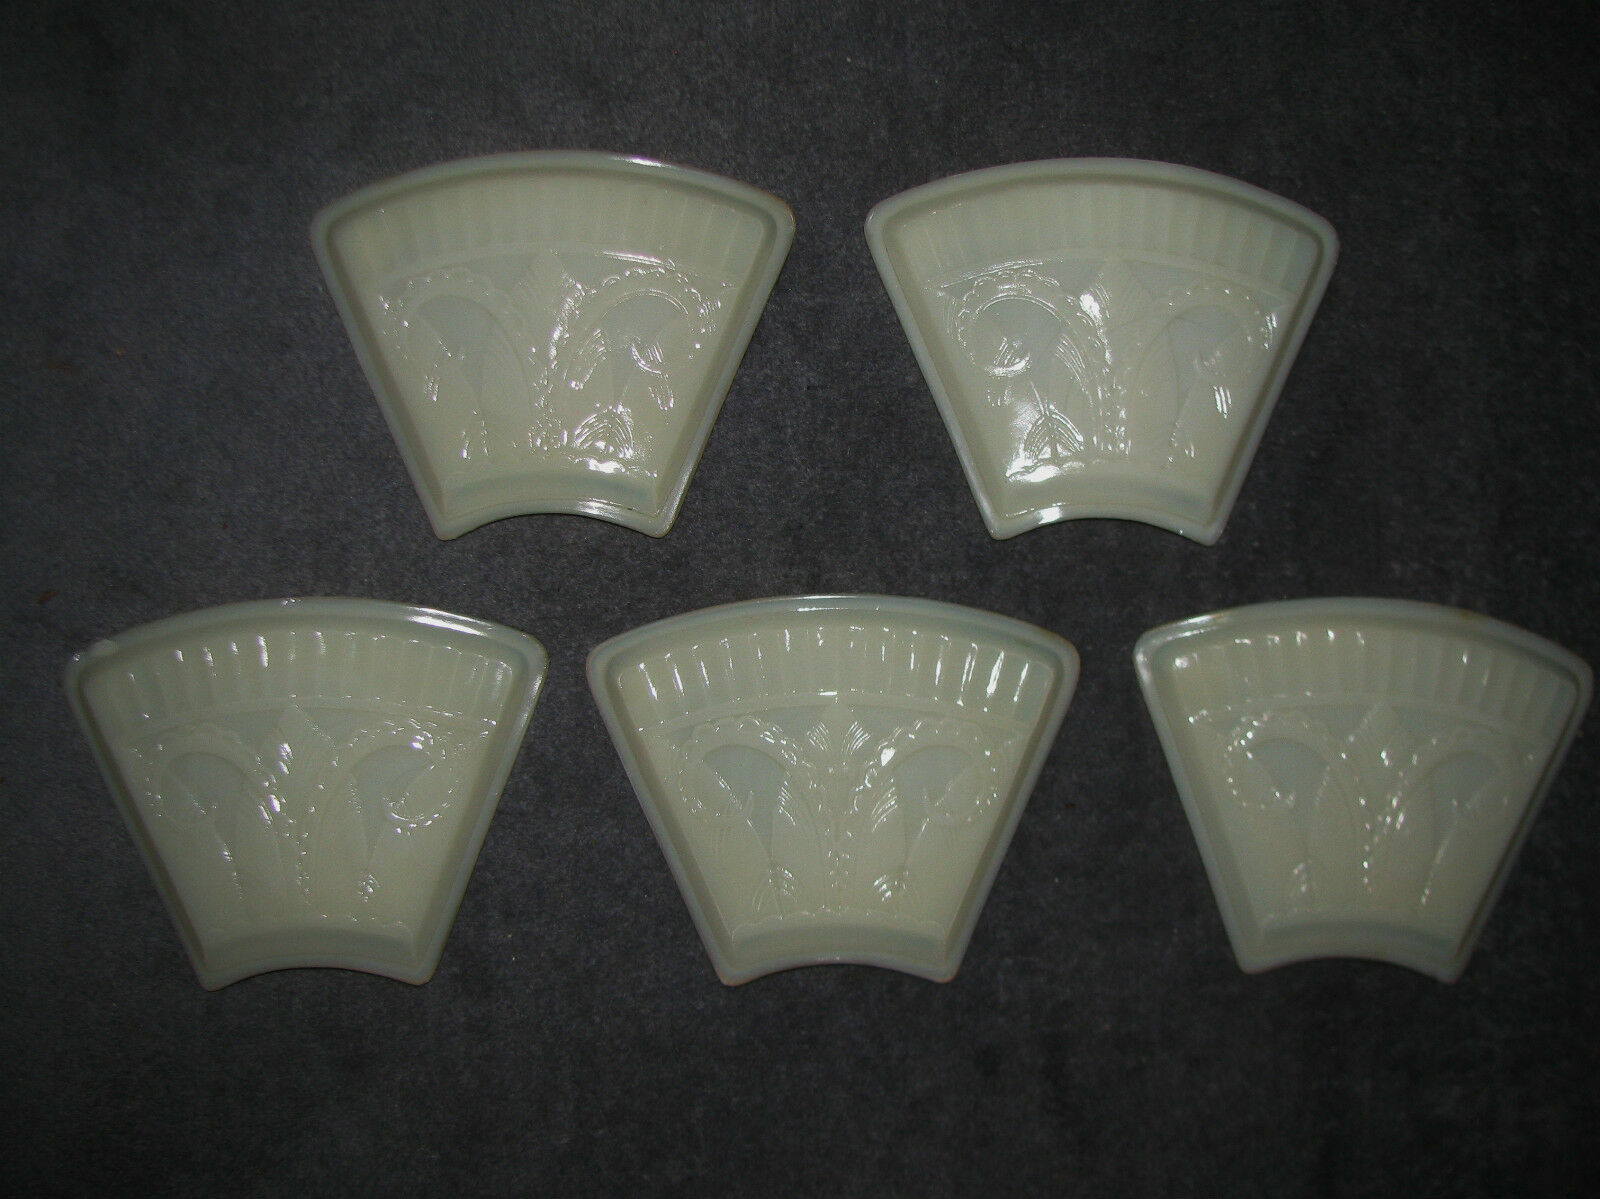 Vintage Slip Shades Glass Set Of 5 Ea. For Chandelier Sconces Light Fixture